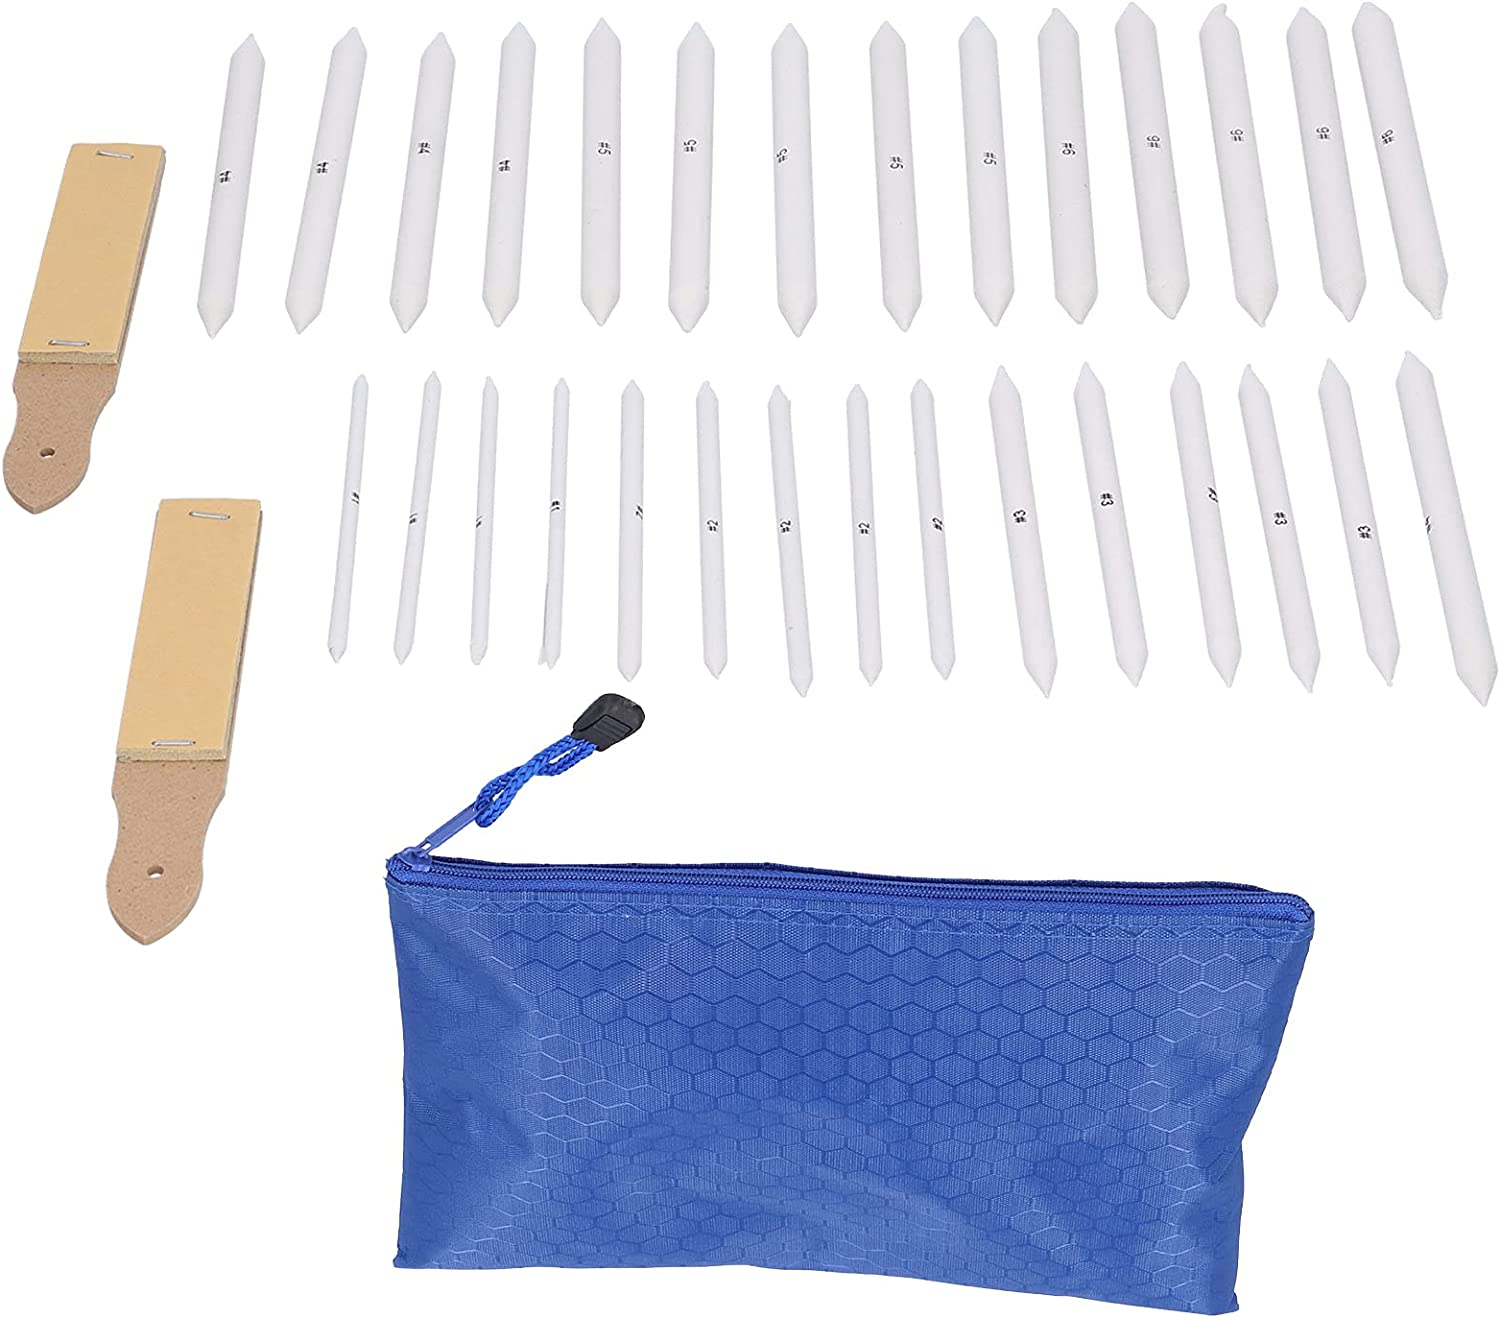 Max 50% OFF Art Blenders Set Blending Stumps Too Today's only Drawing and Tortillions